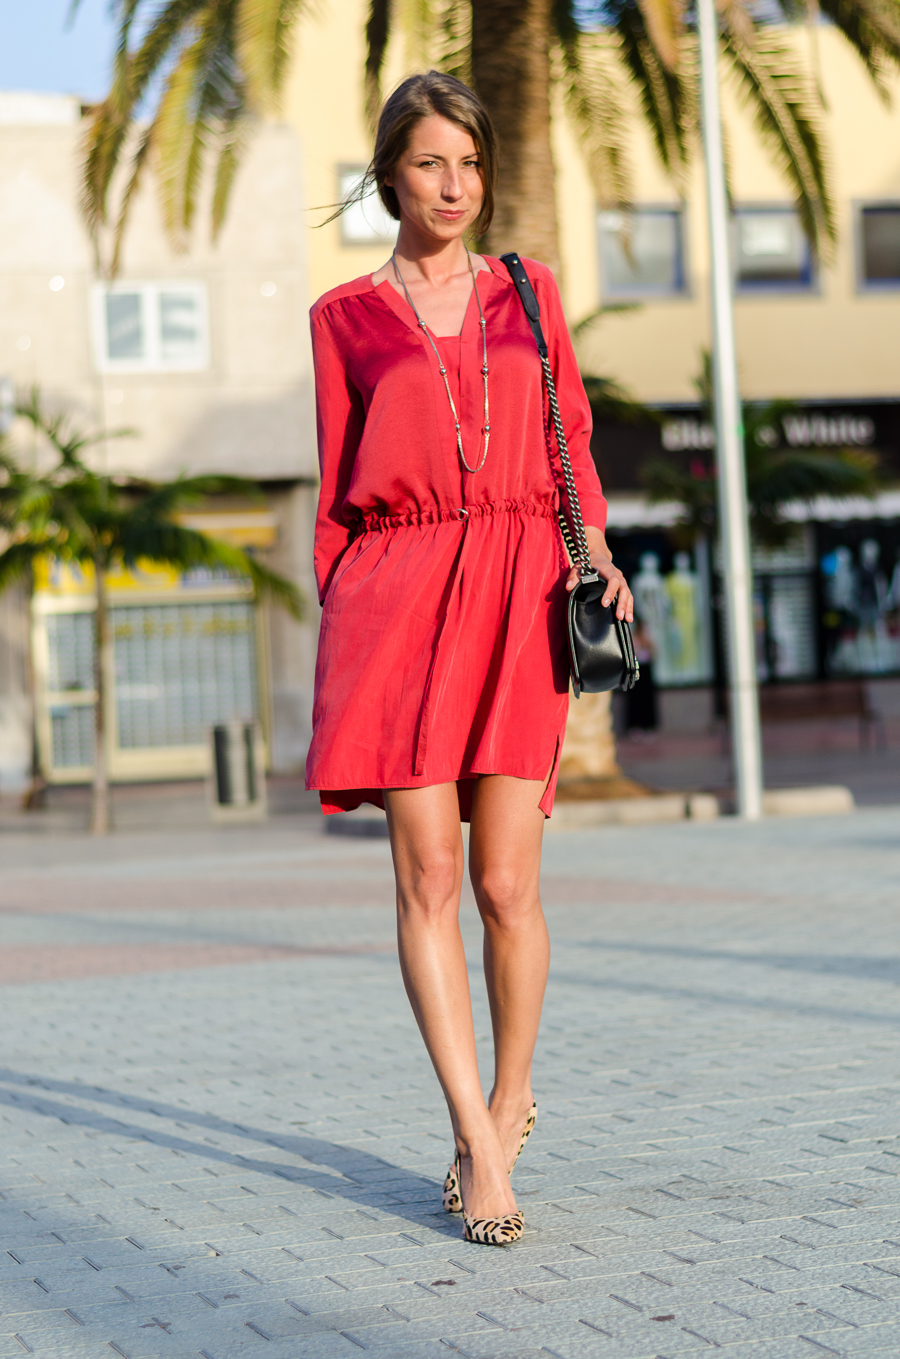 rotes tunika kleid leopard pumps outfit style blogger